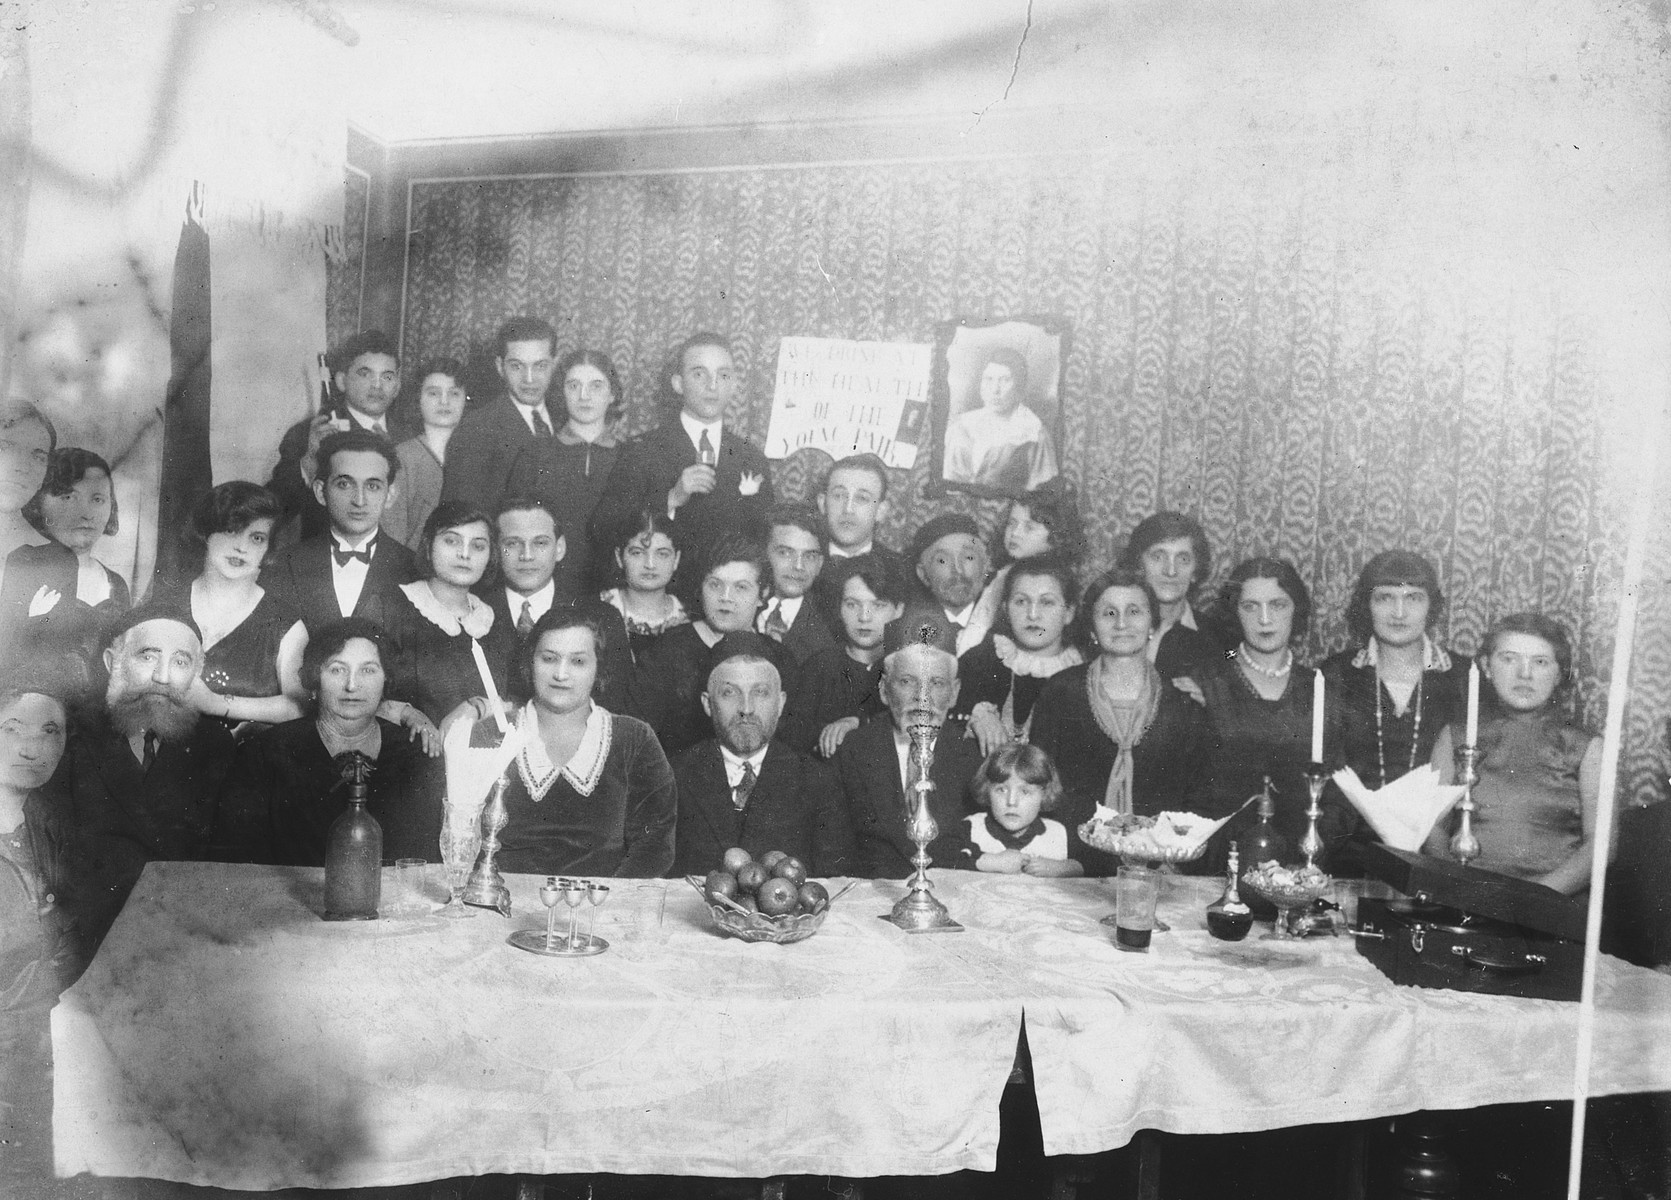 "The Safirsztajn family gathers to celebrate the marriage of Mordechai Safirsztajn who had immigrated to the United States.  The sign hanging on wall behind them reads: ""We drink to the health of the young couple.""  Among those pictured is Regina Safirsztajn (far right), one of the four women who was hanged for her participation in the Auschwitz uprising.   Pictured are last row, left to right: Ajzyk Safisrsztajn, unknown, [first name unknown] Gold, unknown, and [first name unknown] Gold.  Middle row: unknown, [first name unknown] Safirsztajn, wife of Wolf Safirsztajn, Wolf Safirsztajn, [first name unknown] Najmark, [first name unknown] Najmark, [first name unknown] Najmark, Chana Safirsztajn Ickowicz, Adek Eizel Safirsztajn, Abel Ickowicz, Szaja Ickowicz, Bronia Ickowicz, Tonia Safirsztajn, [first name unknown] Safirsztajn, ""Mima"", [first name unknown] Gold, [first name unknown] Gold, and Regina Safirsztajn.  Seated in first row, left to right: unknown, Icie Safirsztajn, Golda Safirsztajn, Karola Safirsztajn Najmark, Jakub Najmark, Josef Najmark Rozia Ickowicz."